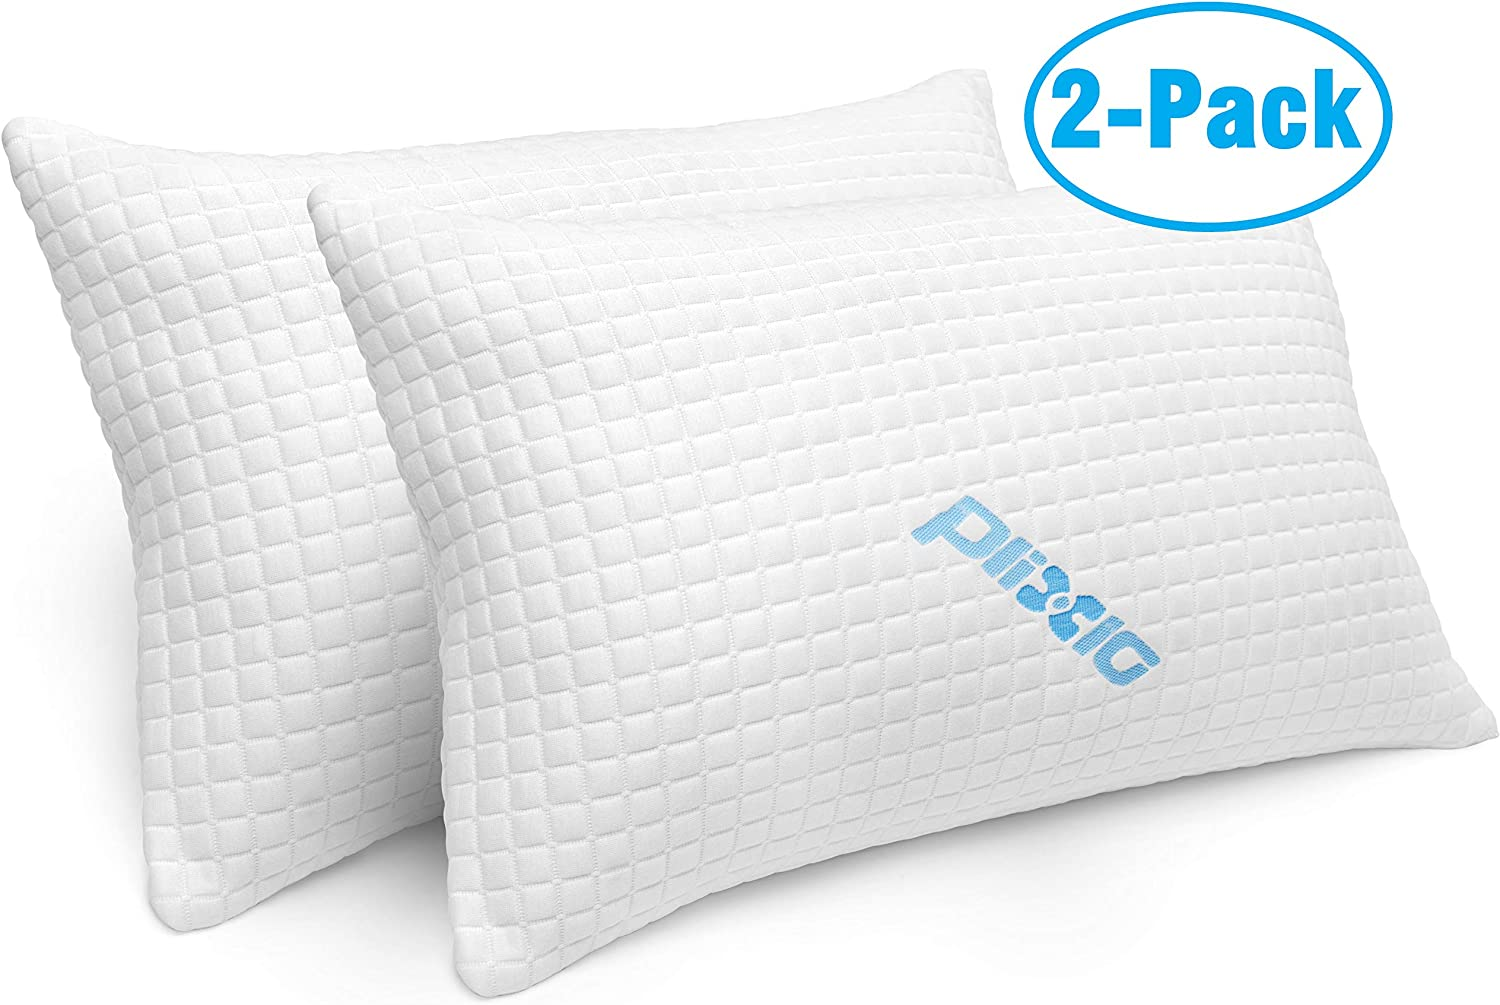 2 Pack Shredded Memory Foam Bed Pillows for Sleeping - Bamboo Cooling Hypoallergenic Sleep Pillow for Back and Side Sleeper - Queen Size: Home & Kitchen